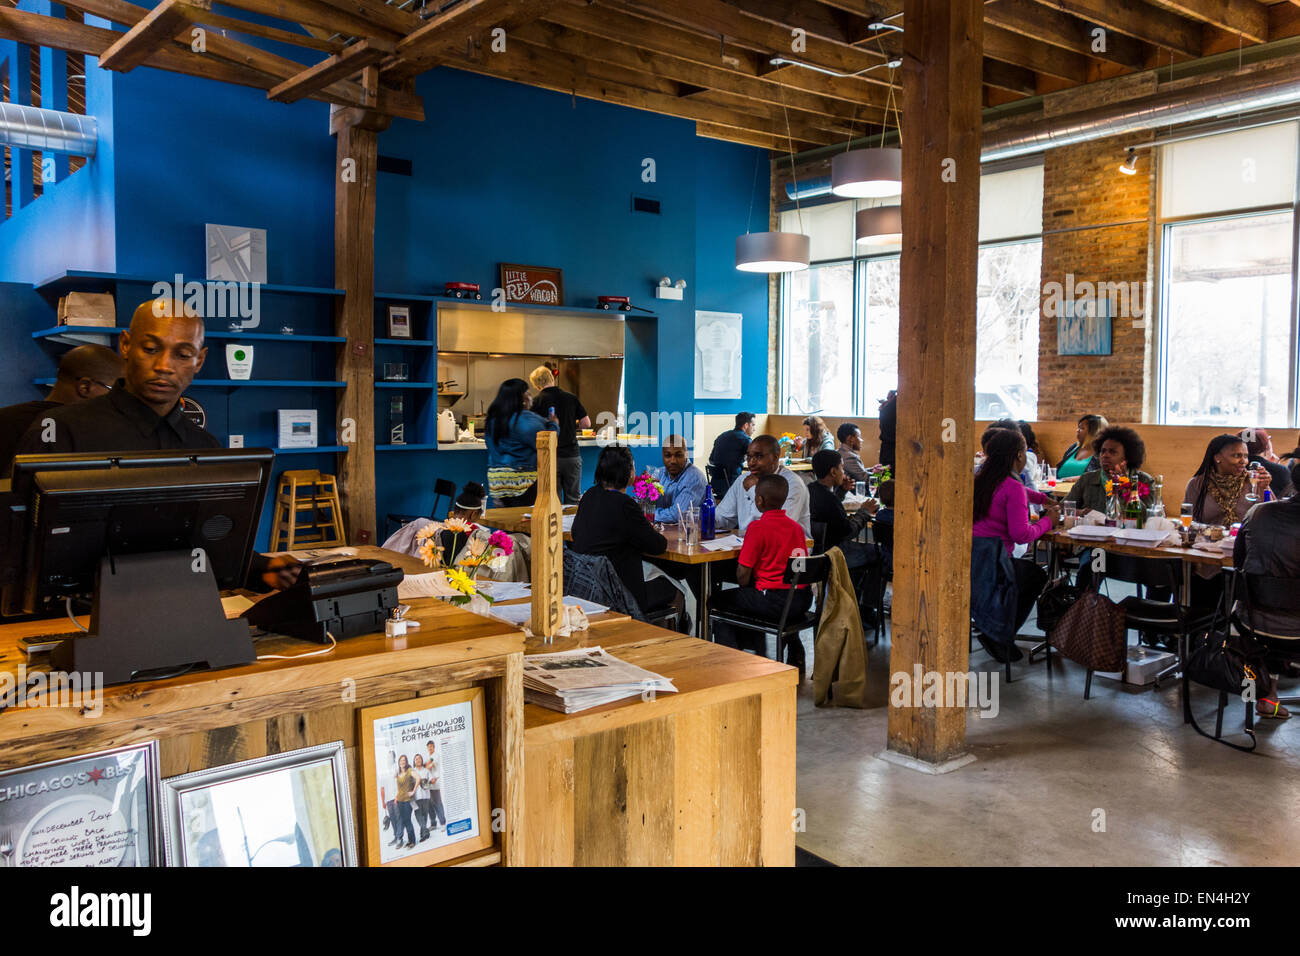 interior of dining space, Inspiration Kitchens cafe and restaurant, Garfield Park, Chicago, USA - Stock Image